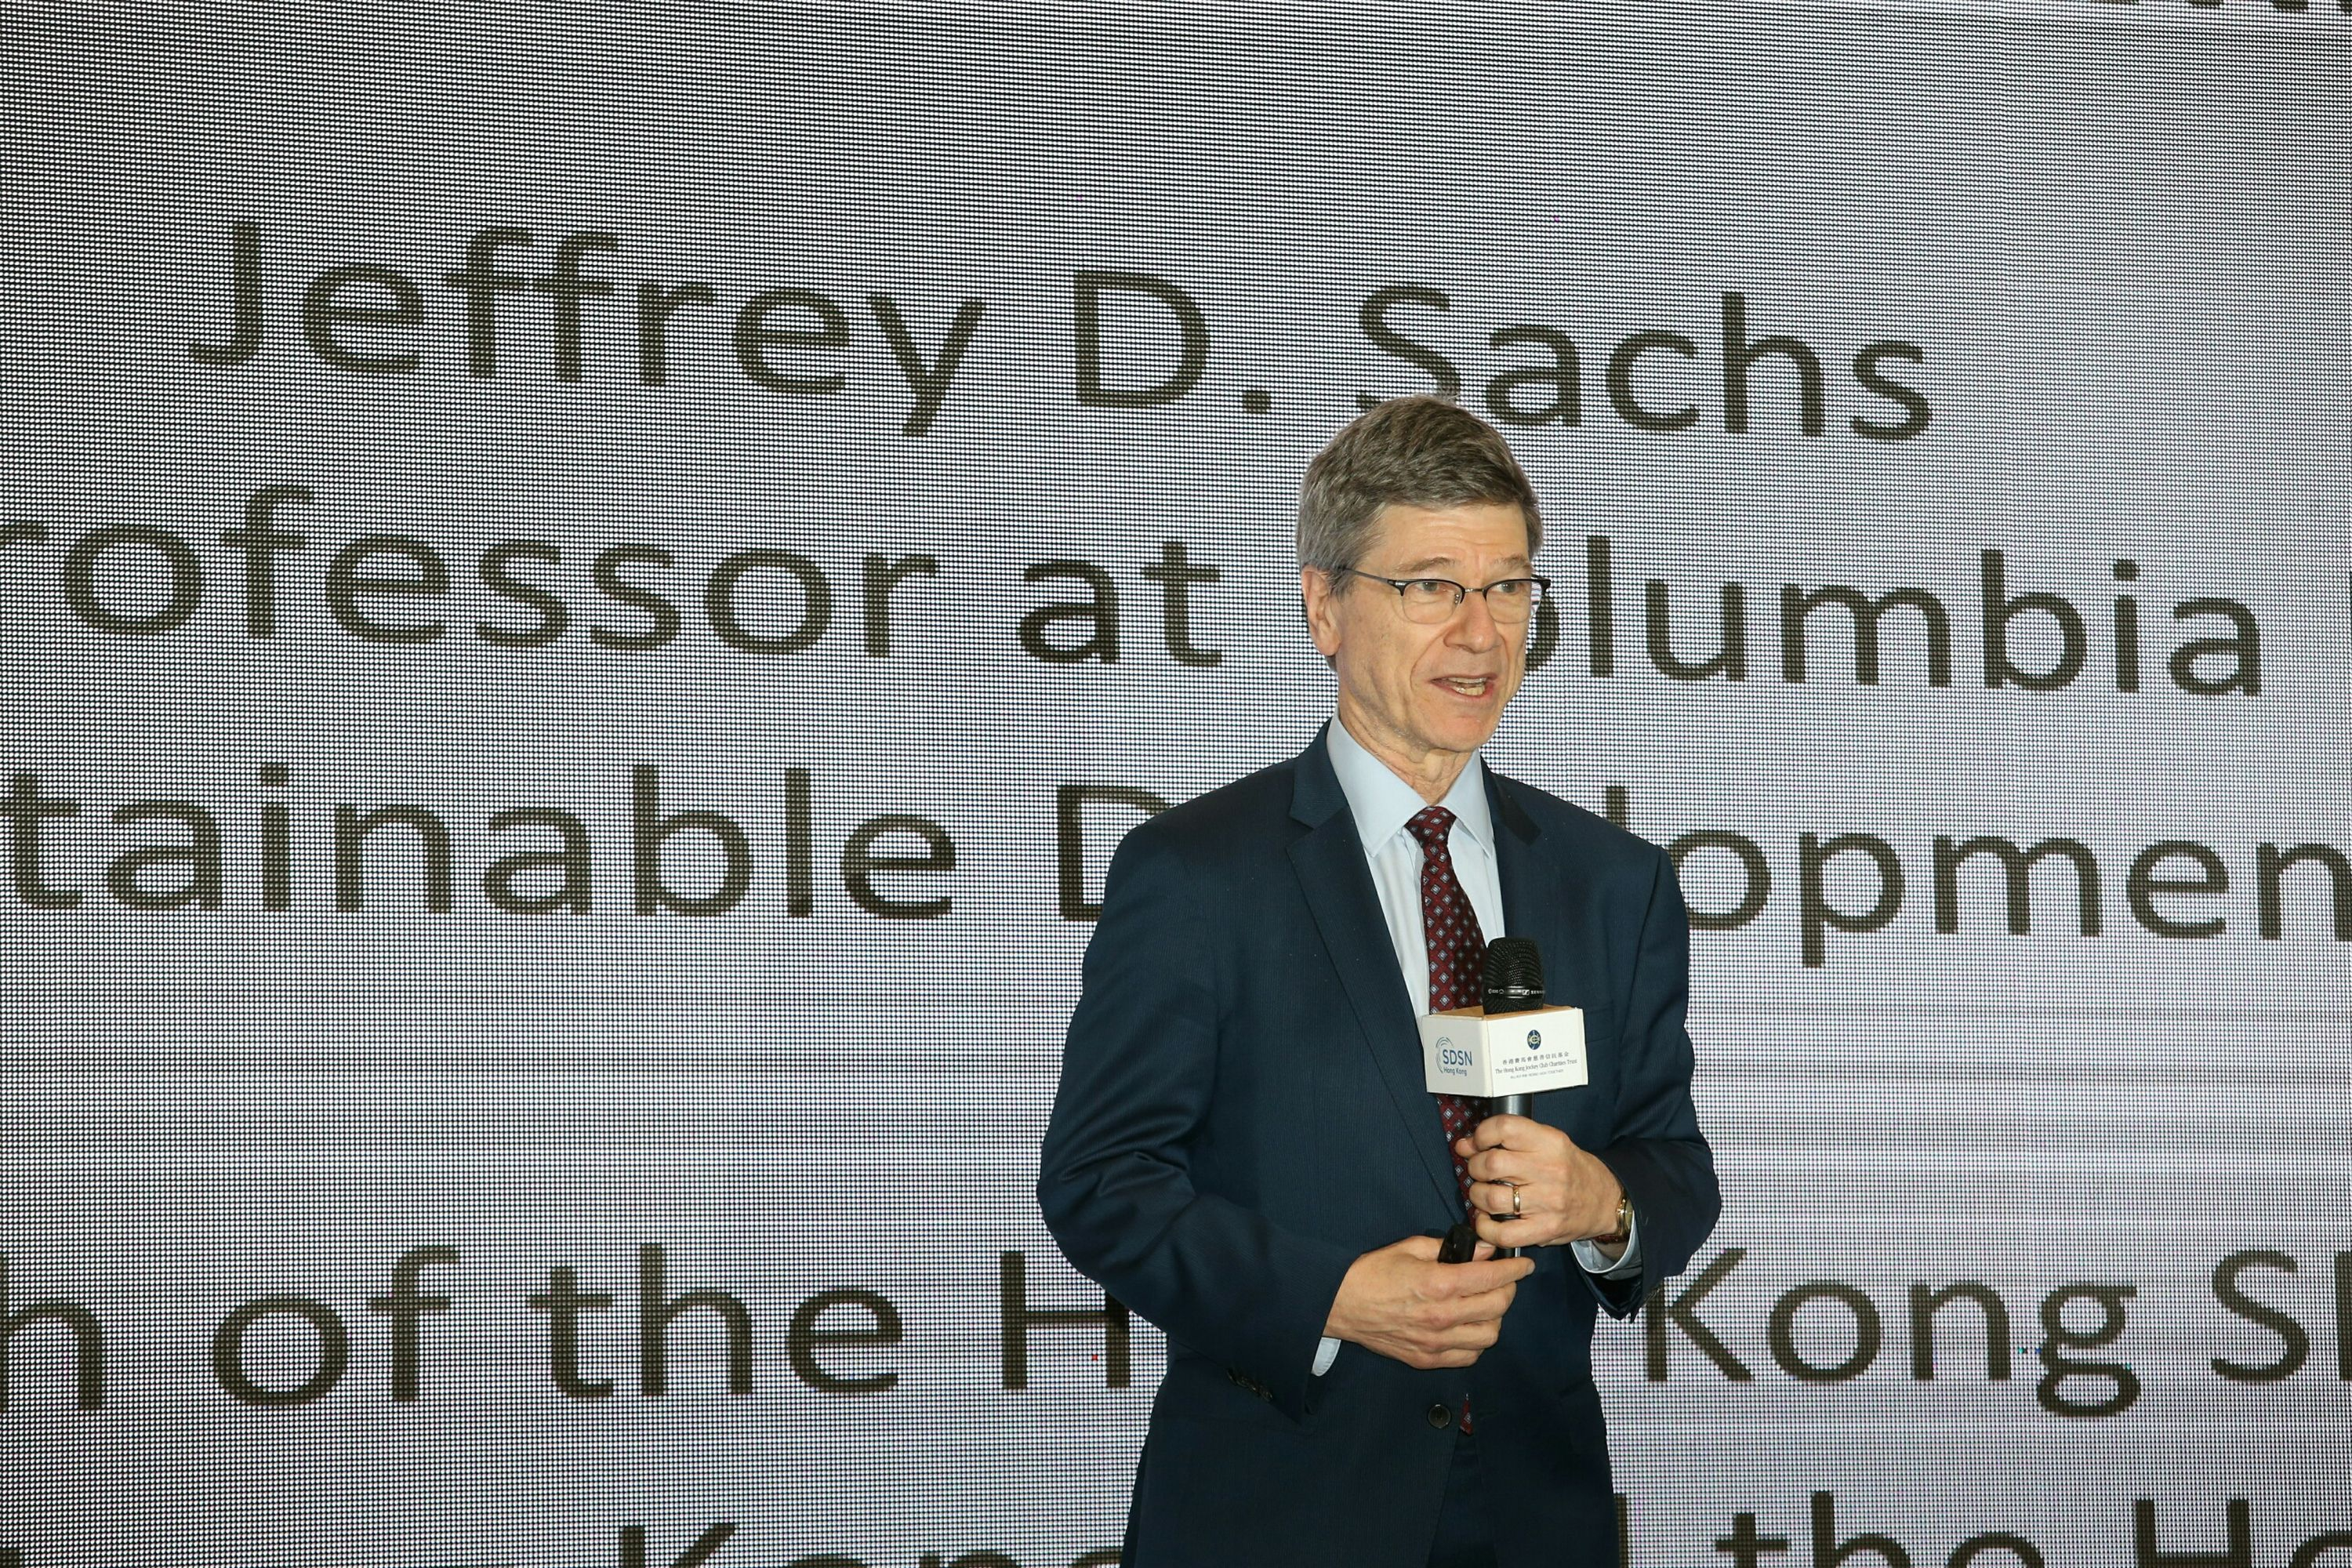 The event climaxed in the keynote speech by Professor Sachs.